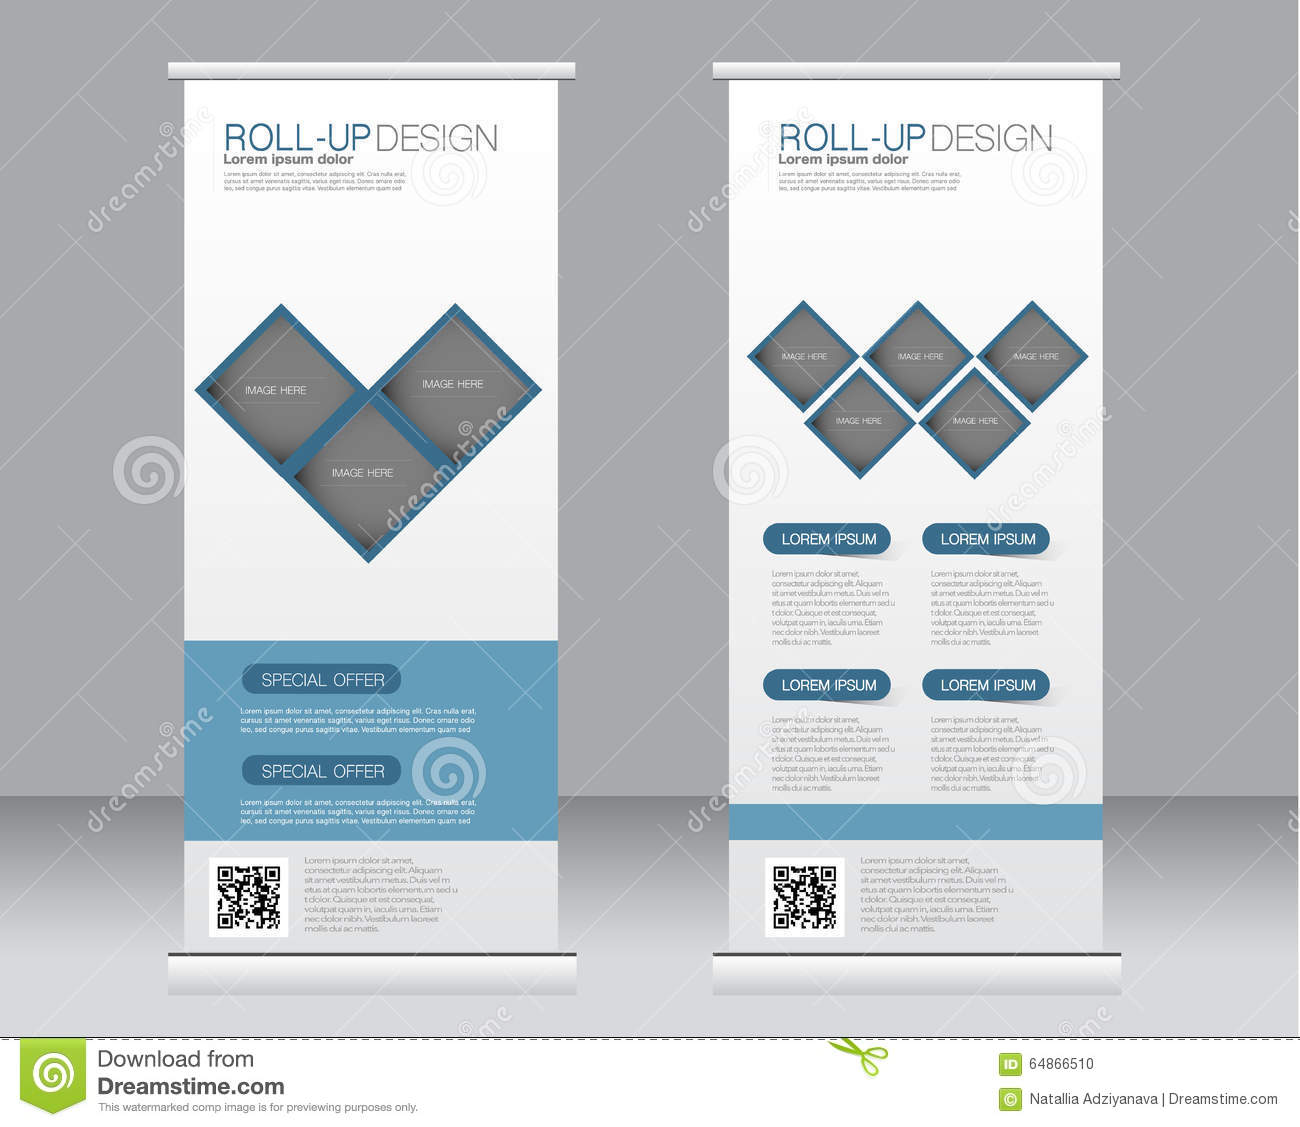 roll up banner stand template abstract background for design roll up banner stand template abstract background for design business education advertisement